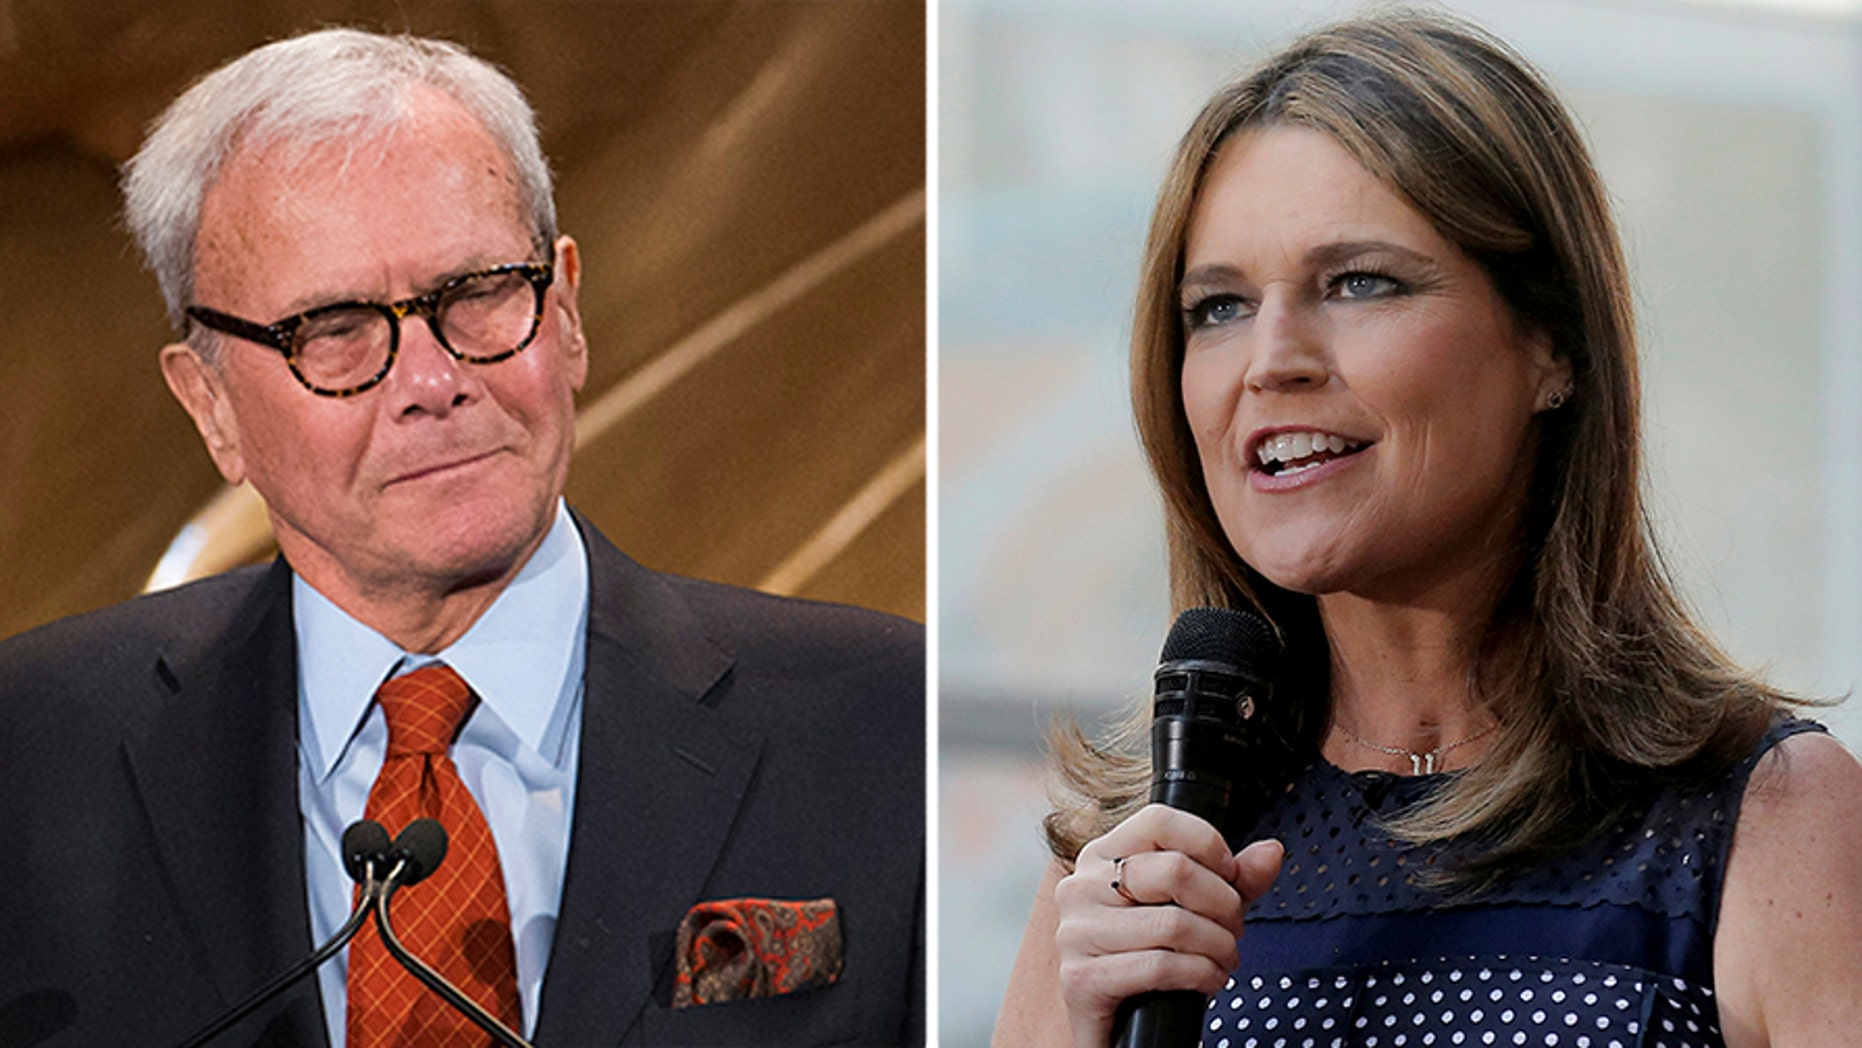 NBC News' Tom Brokaw and Savannah Guthrie spoke about the Russian probe on air just moments before President Trump's first State of the Union address.